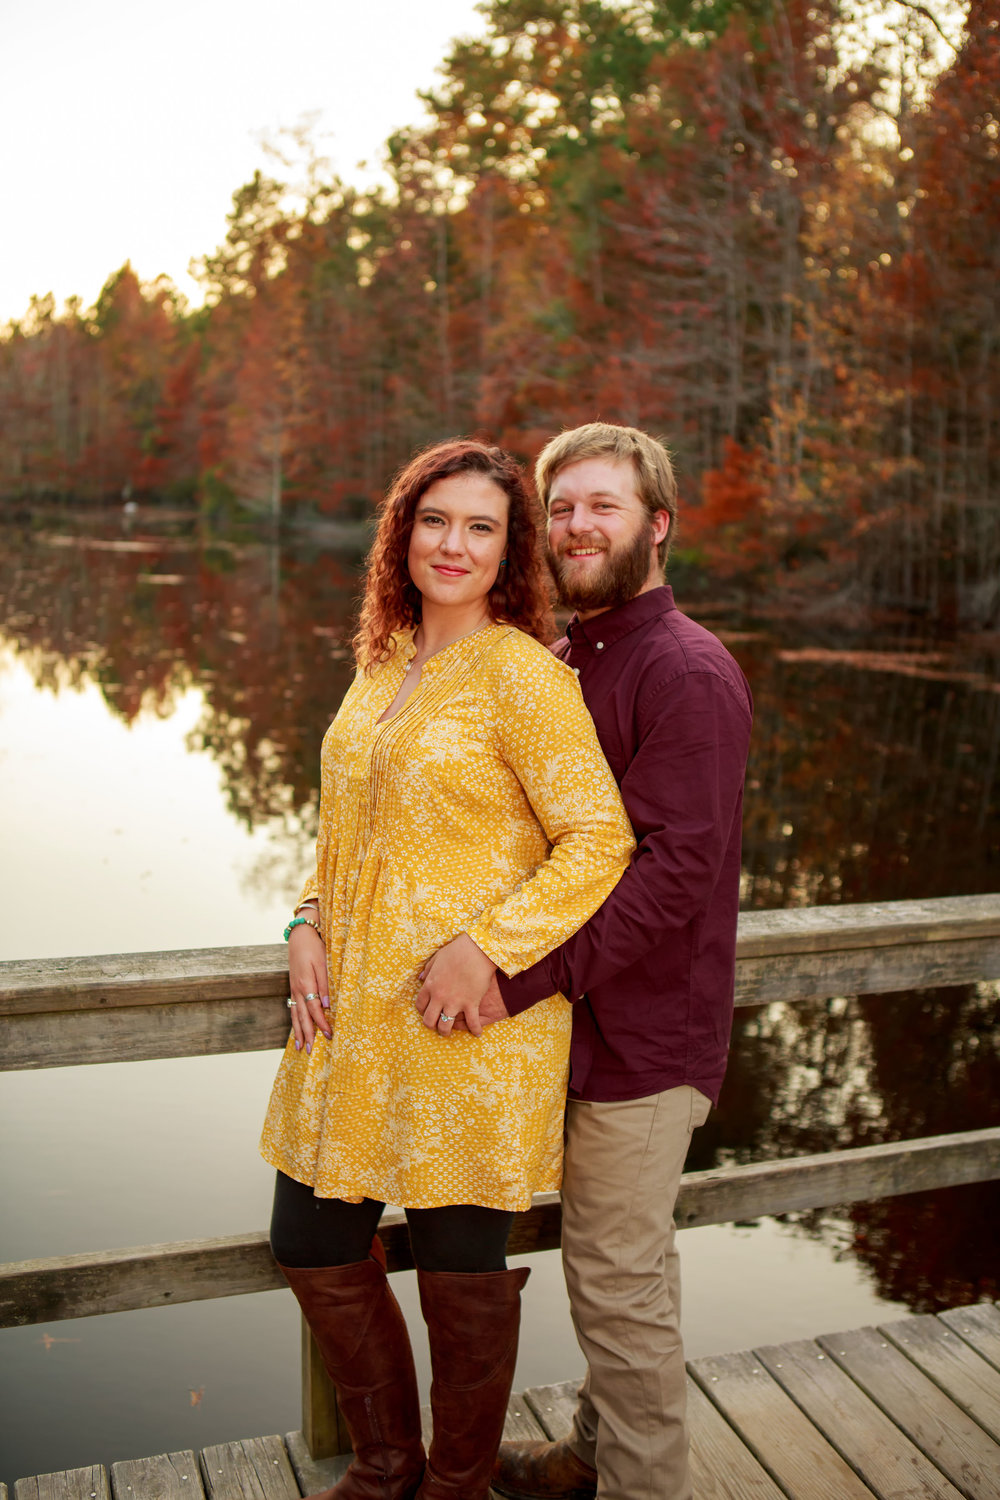 Wilmington_NC_Engagement_Photos_Tiffany_Abruzzo_Photography_43.jpg